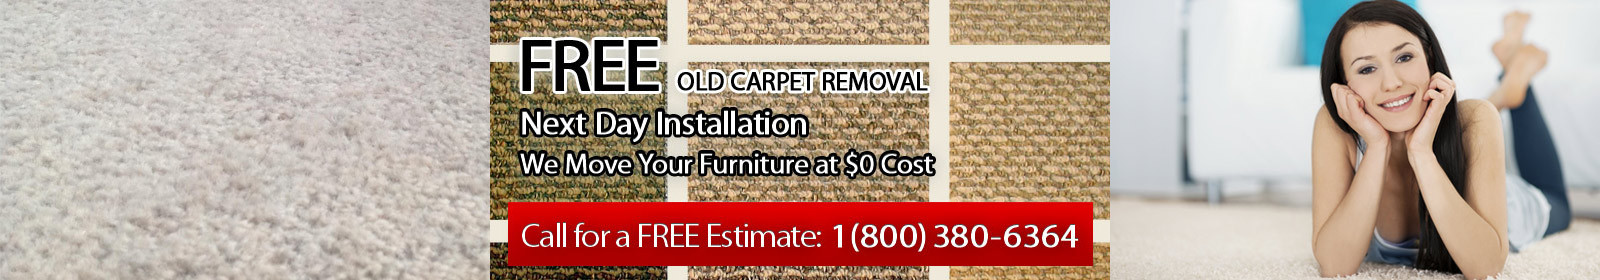 next-day-carpet-installation-service